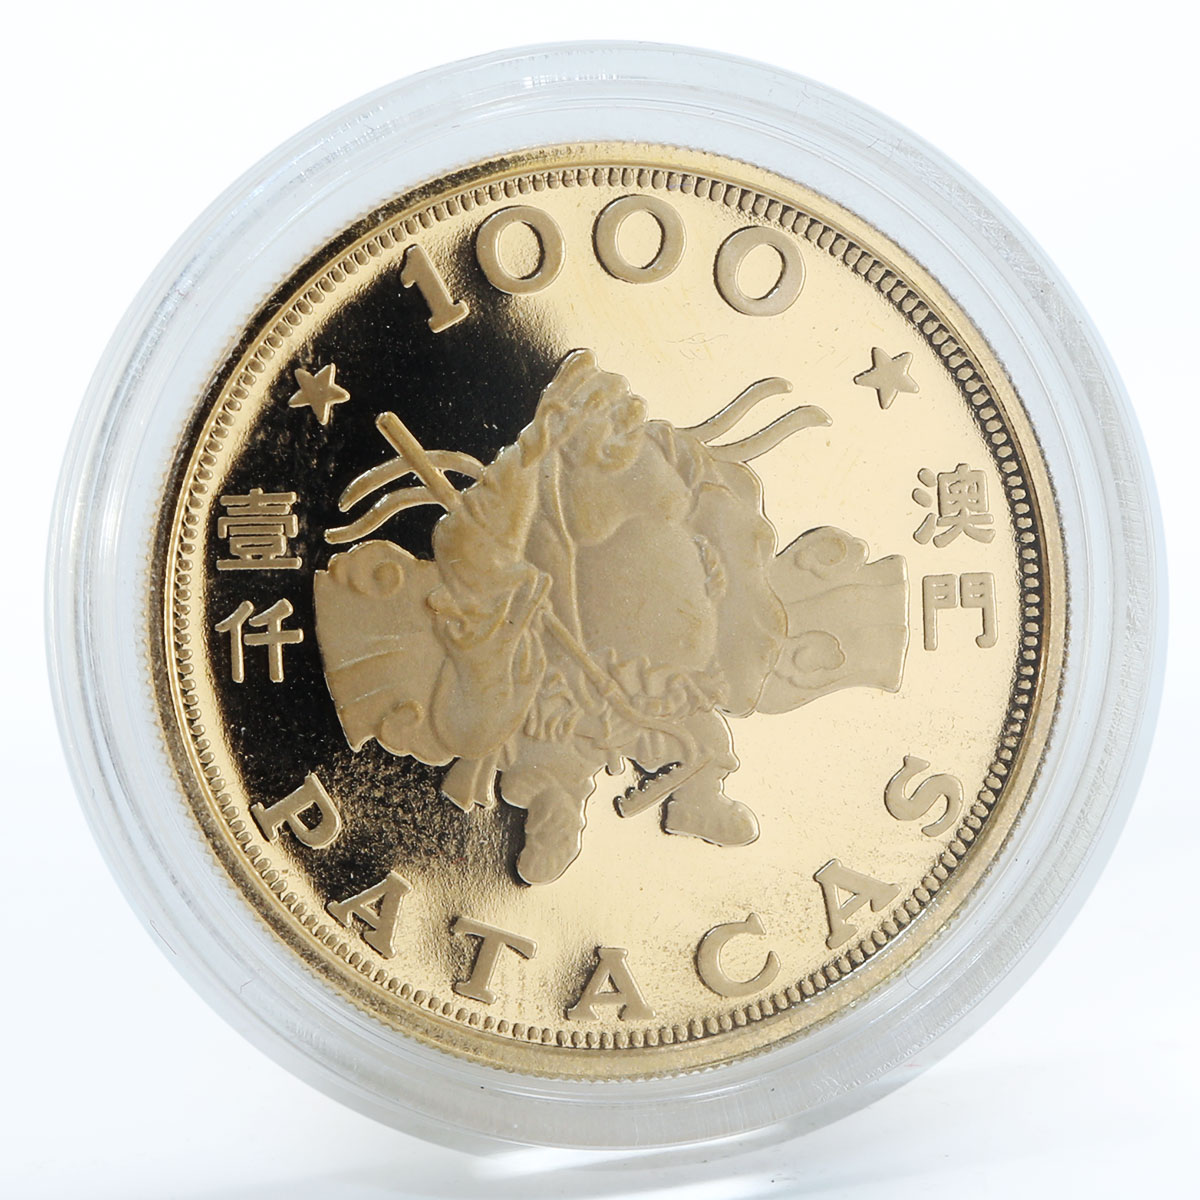 Macau 1000 patacas Year of the Pig proof gold coin 1983